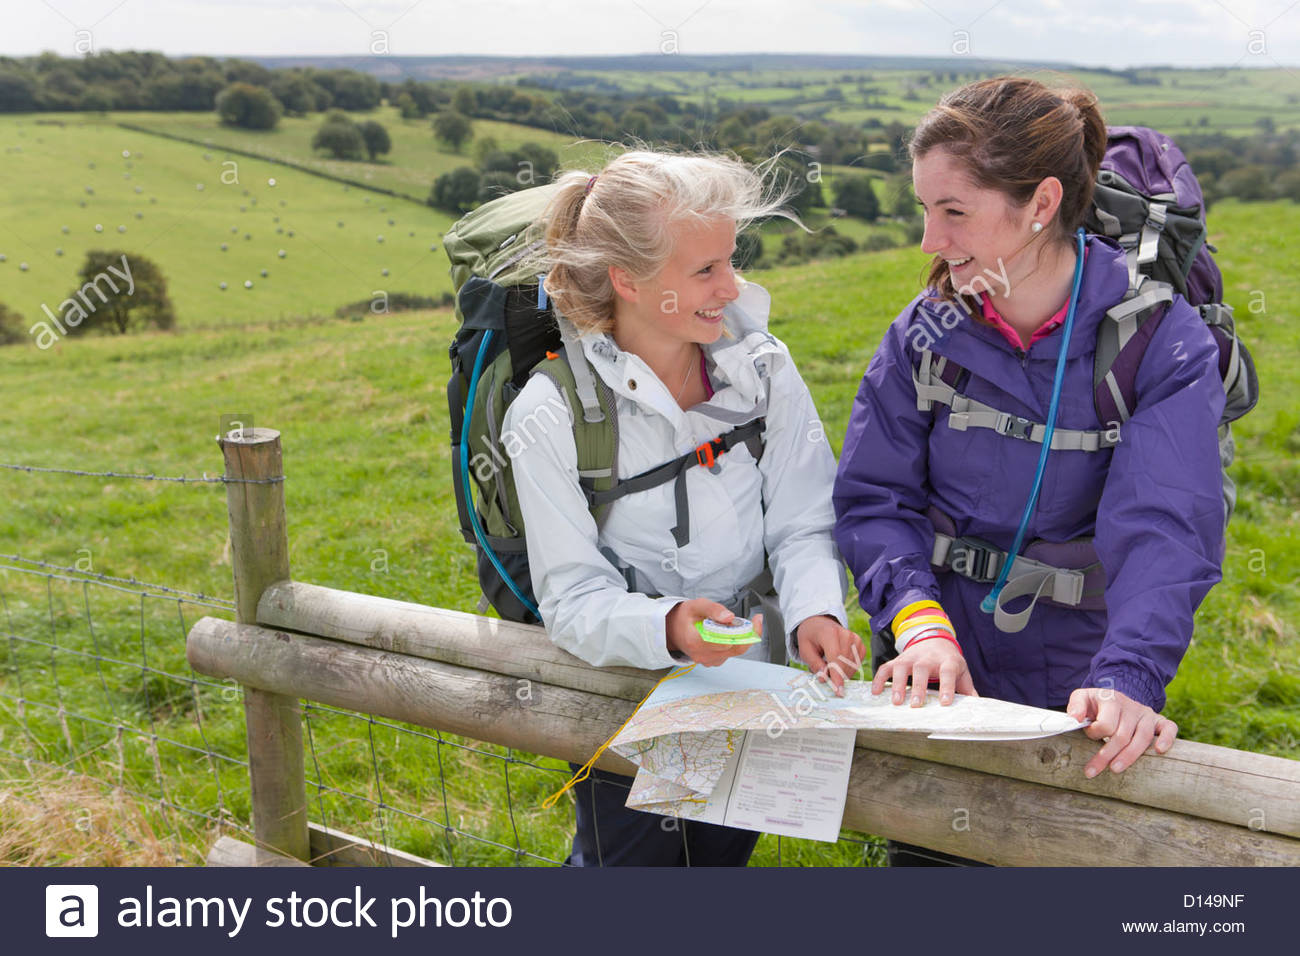 Smiling girls with backpacks compass and map against fence in field - Stock Image